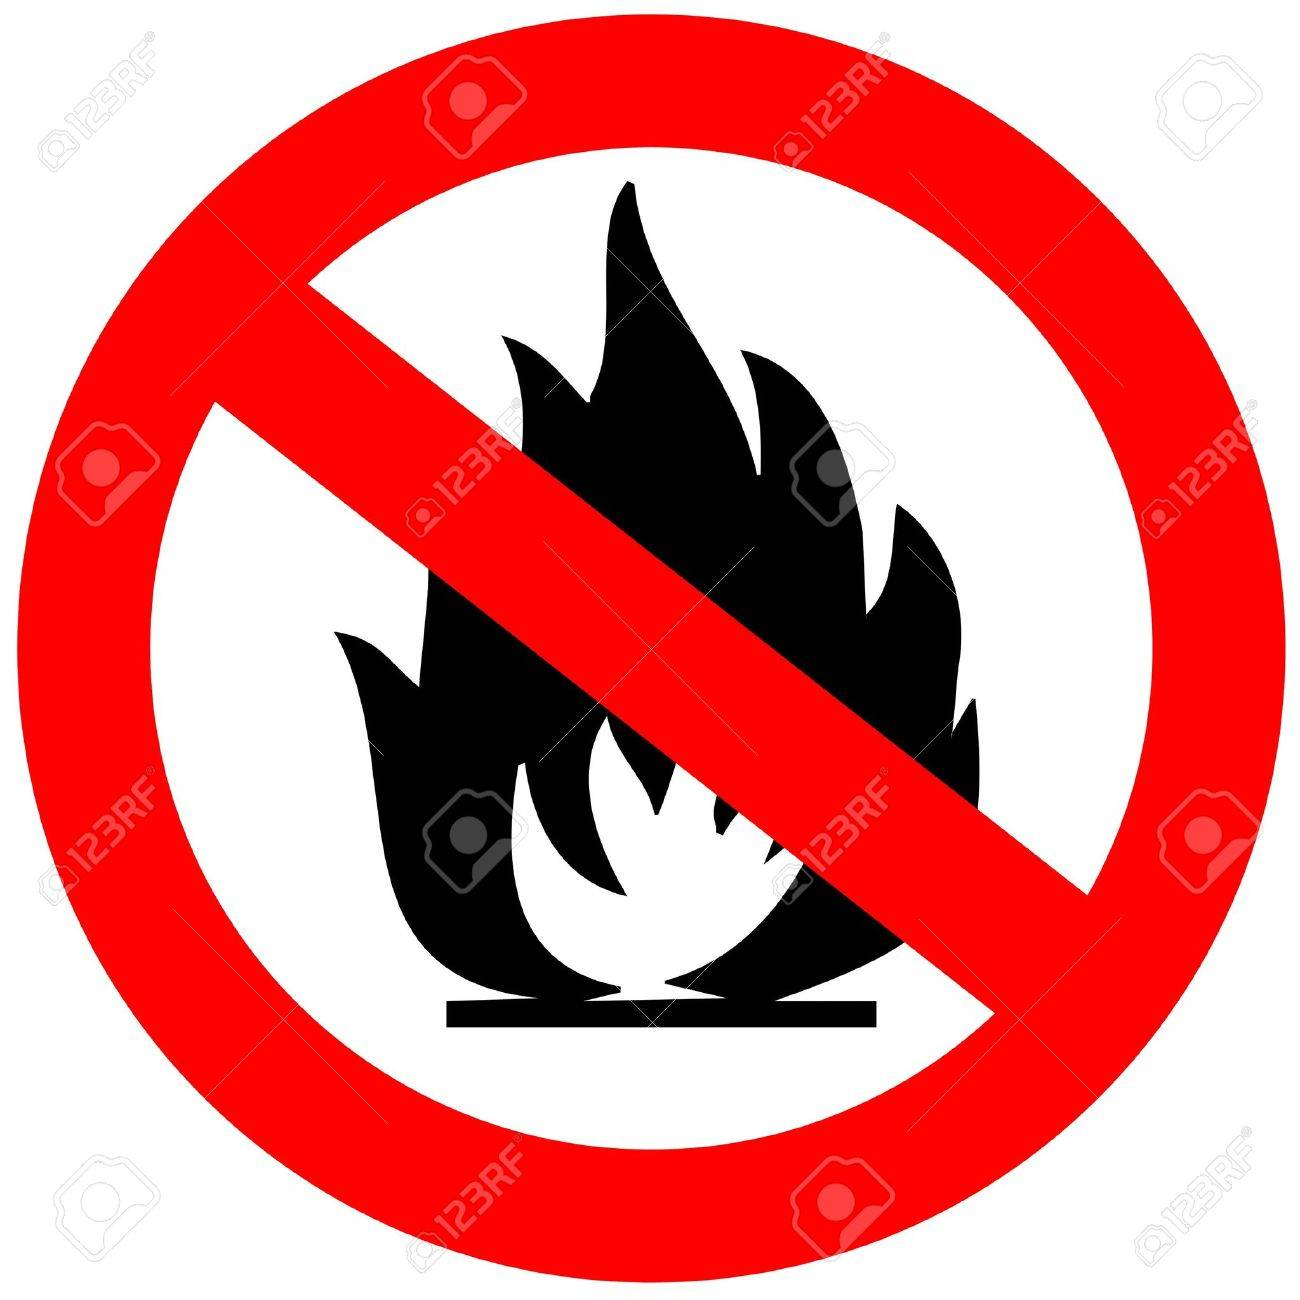 No fire sign Stock Photo - 6190707